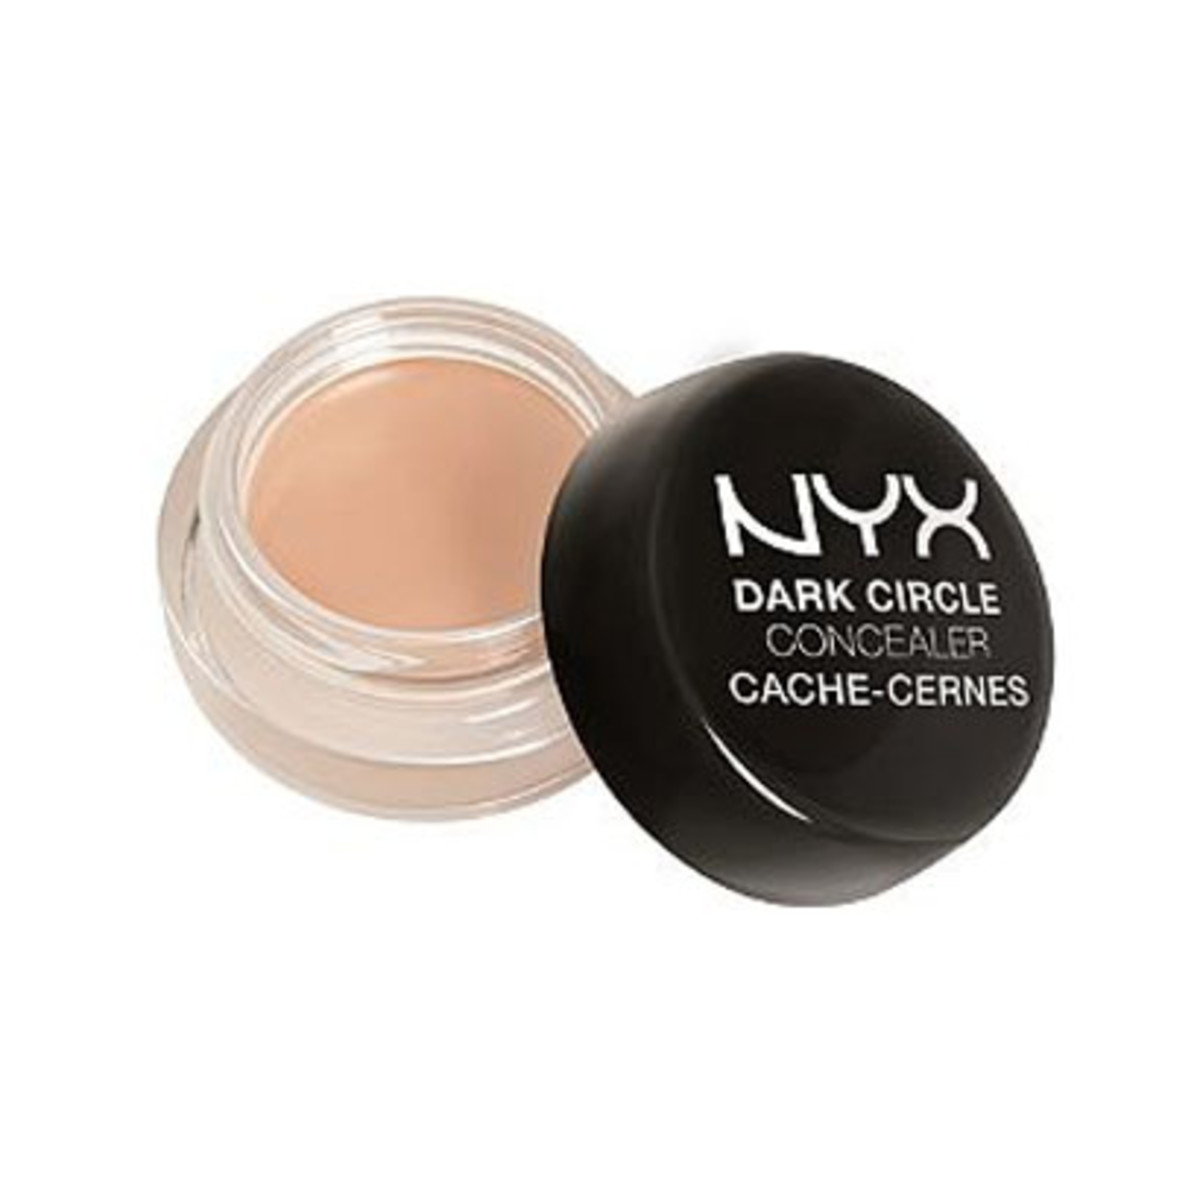 NYX Cosmetics Dark Circle Concealer in Light